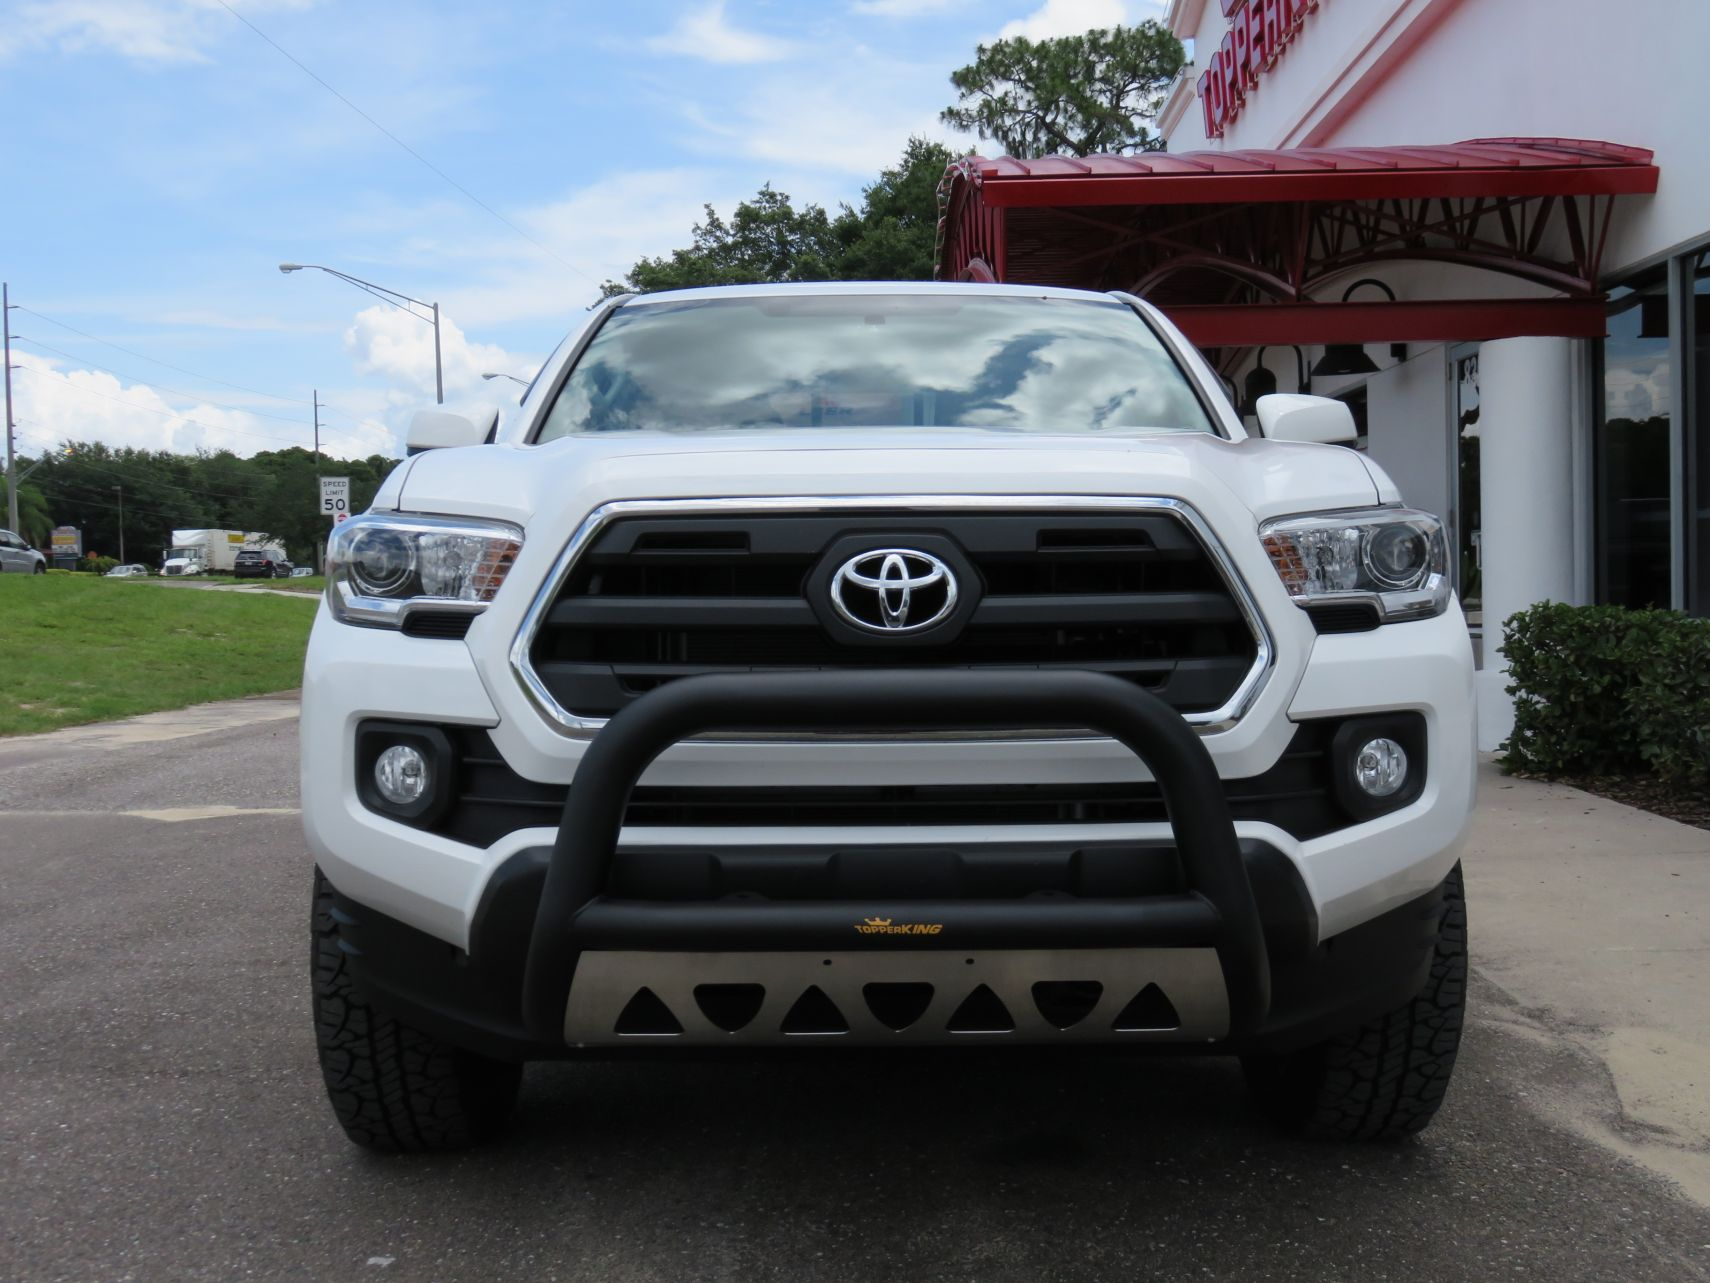 Bull Bars and Grill Guards